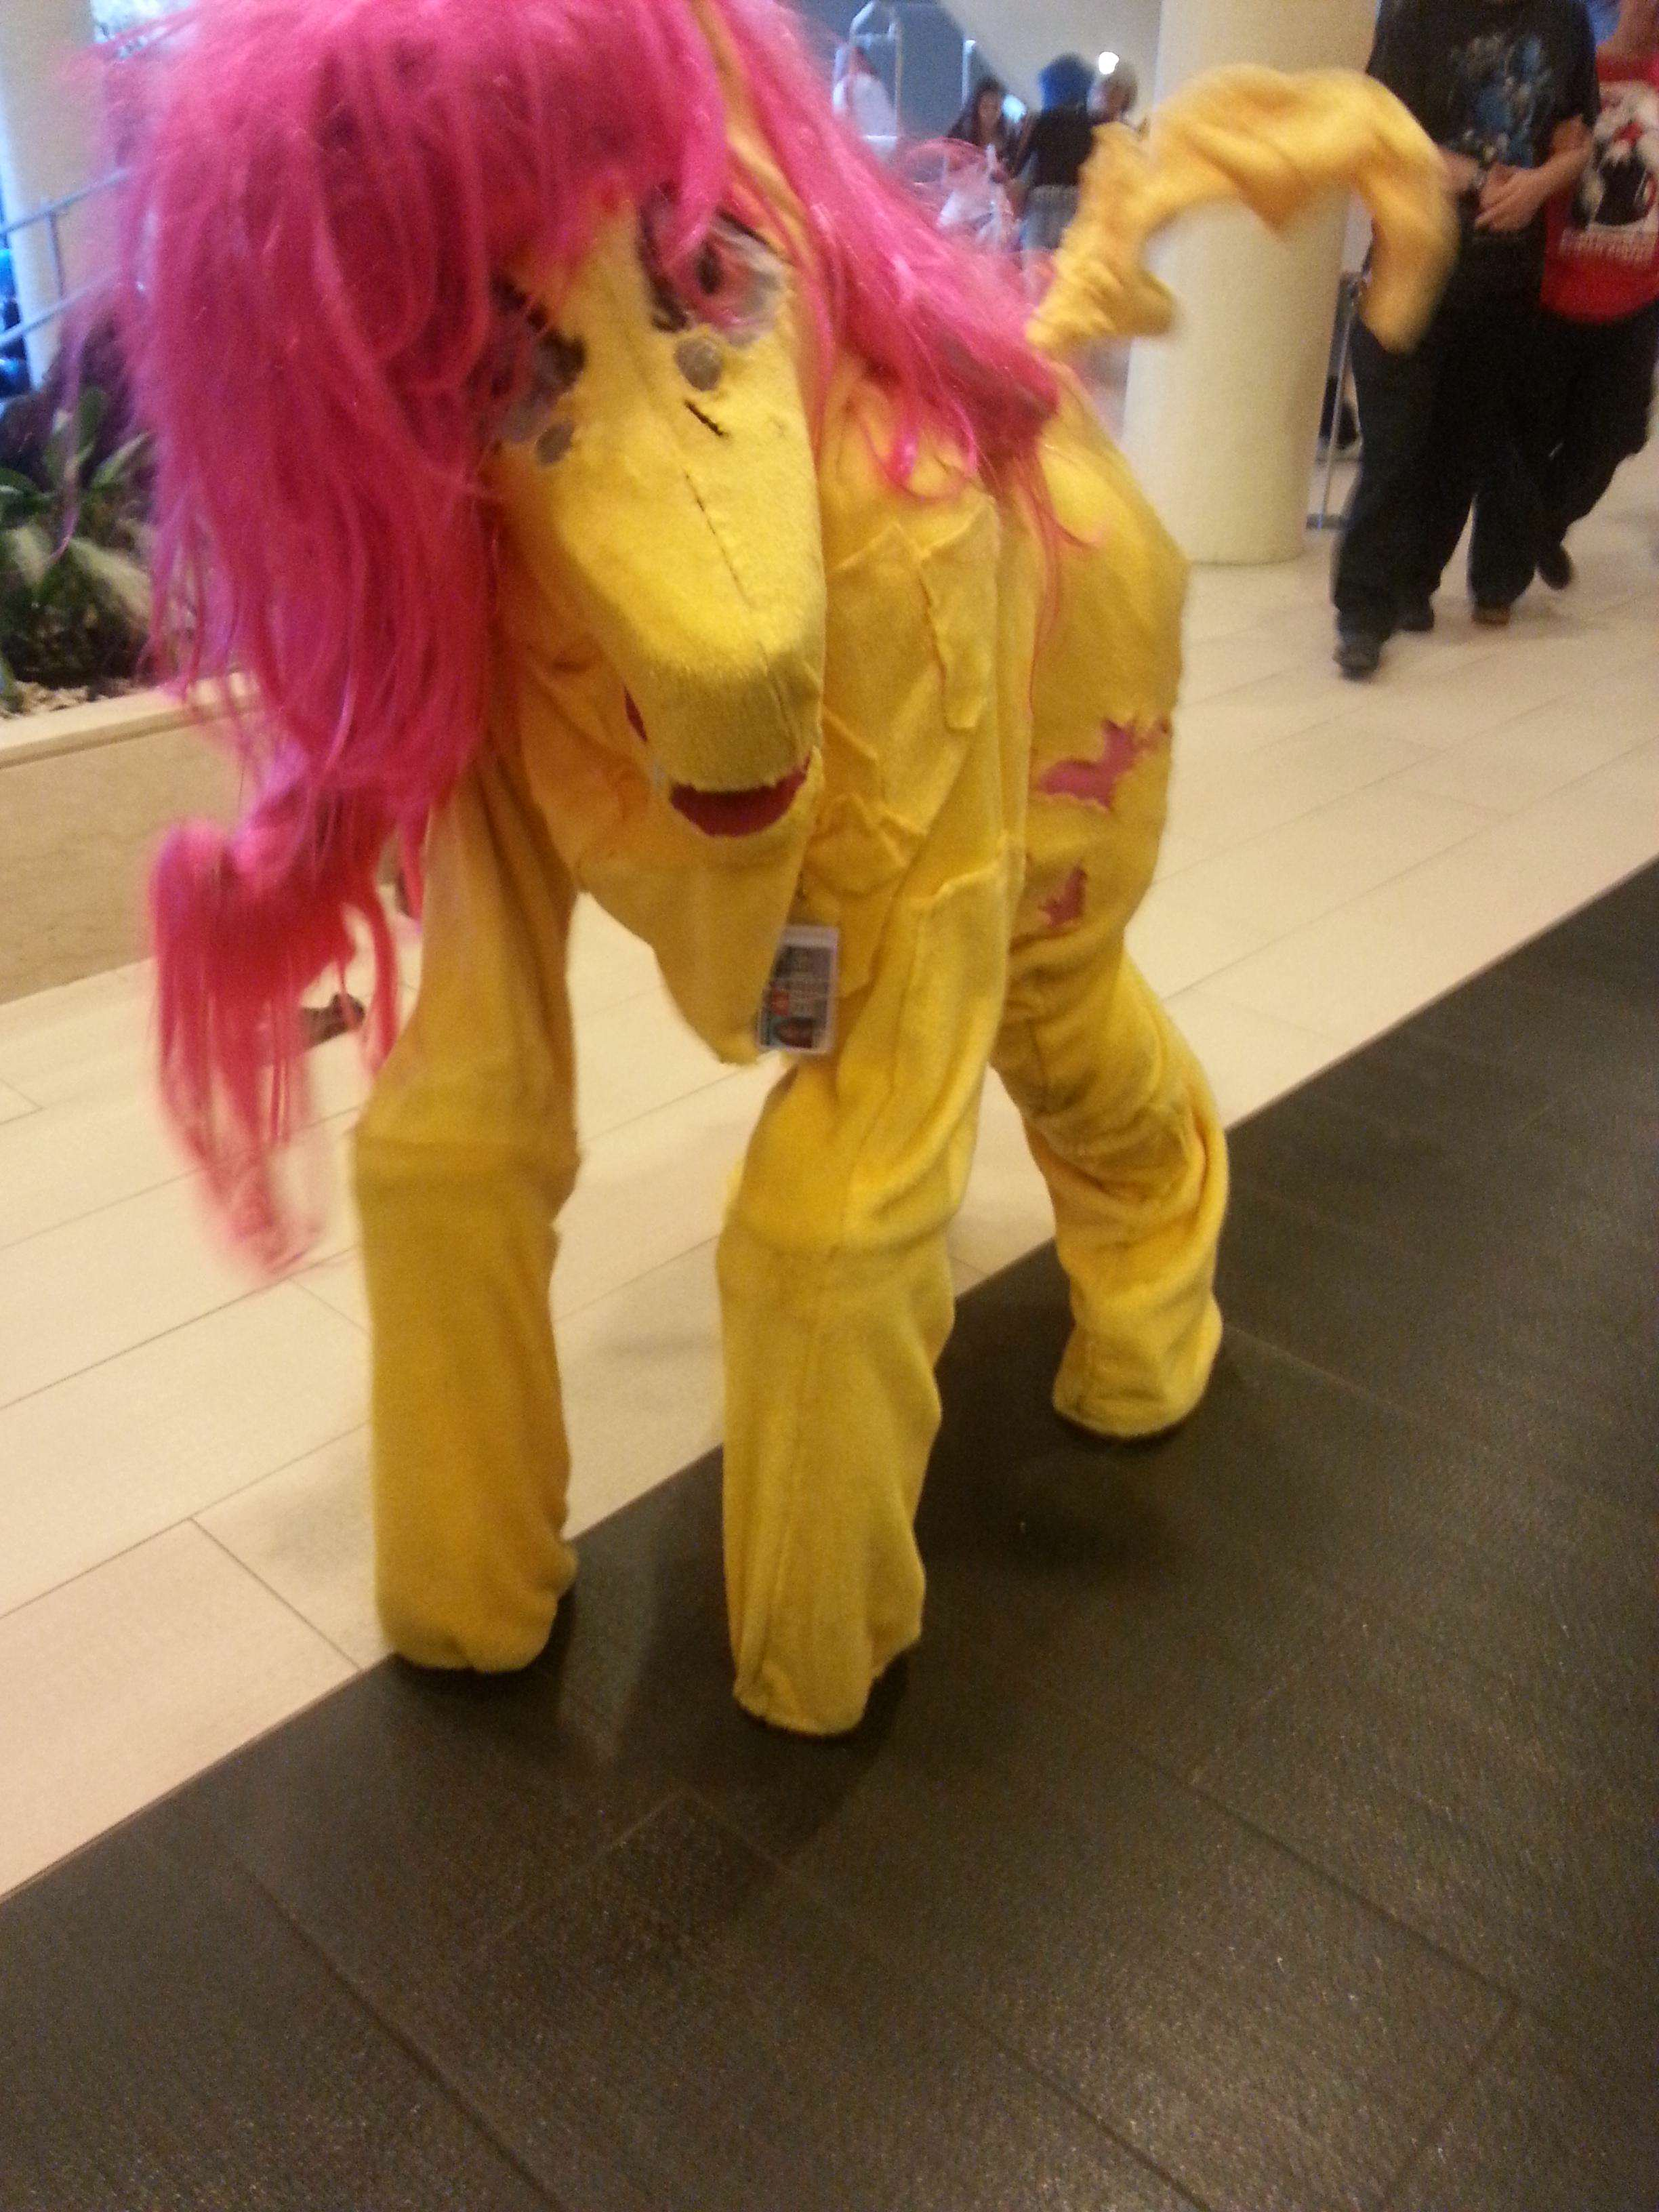 These Sh*tty Cosplay Photos May Be The Funniest Thing Weve Seen Today pvOkHt4